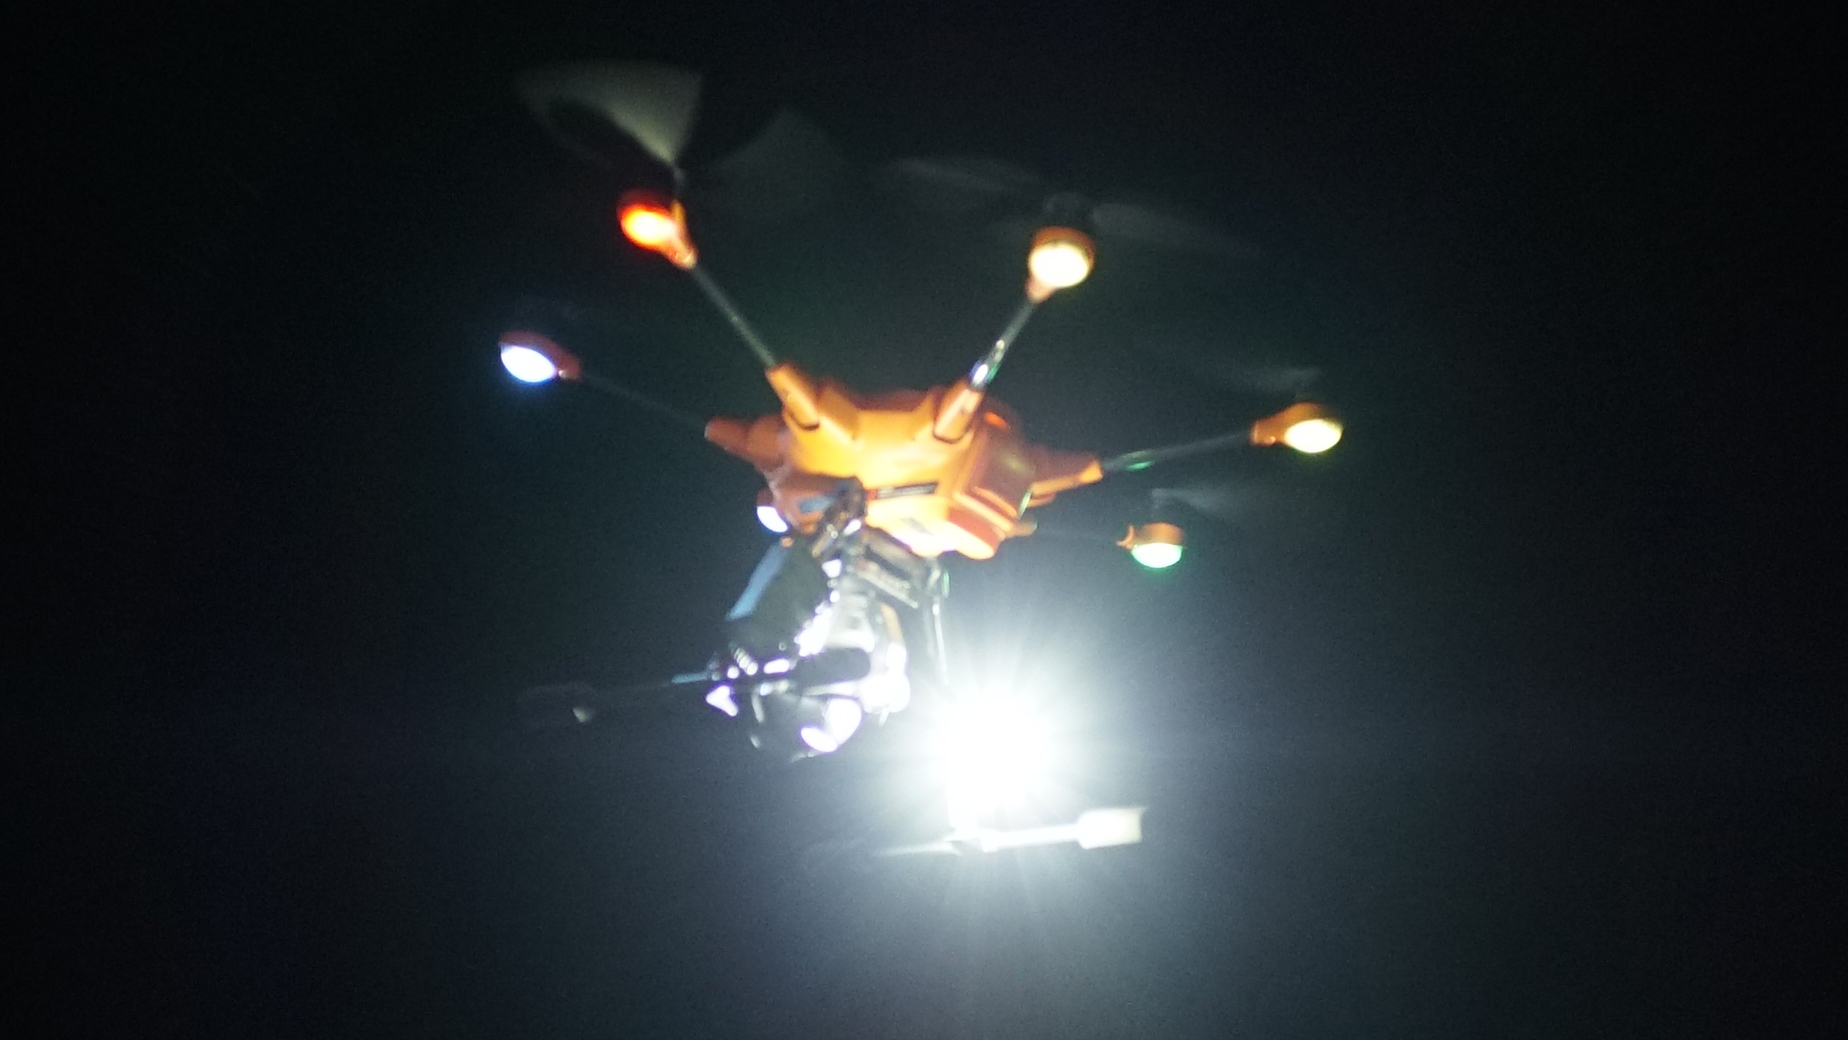 Drone with lights flying at night